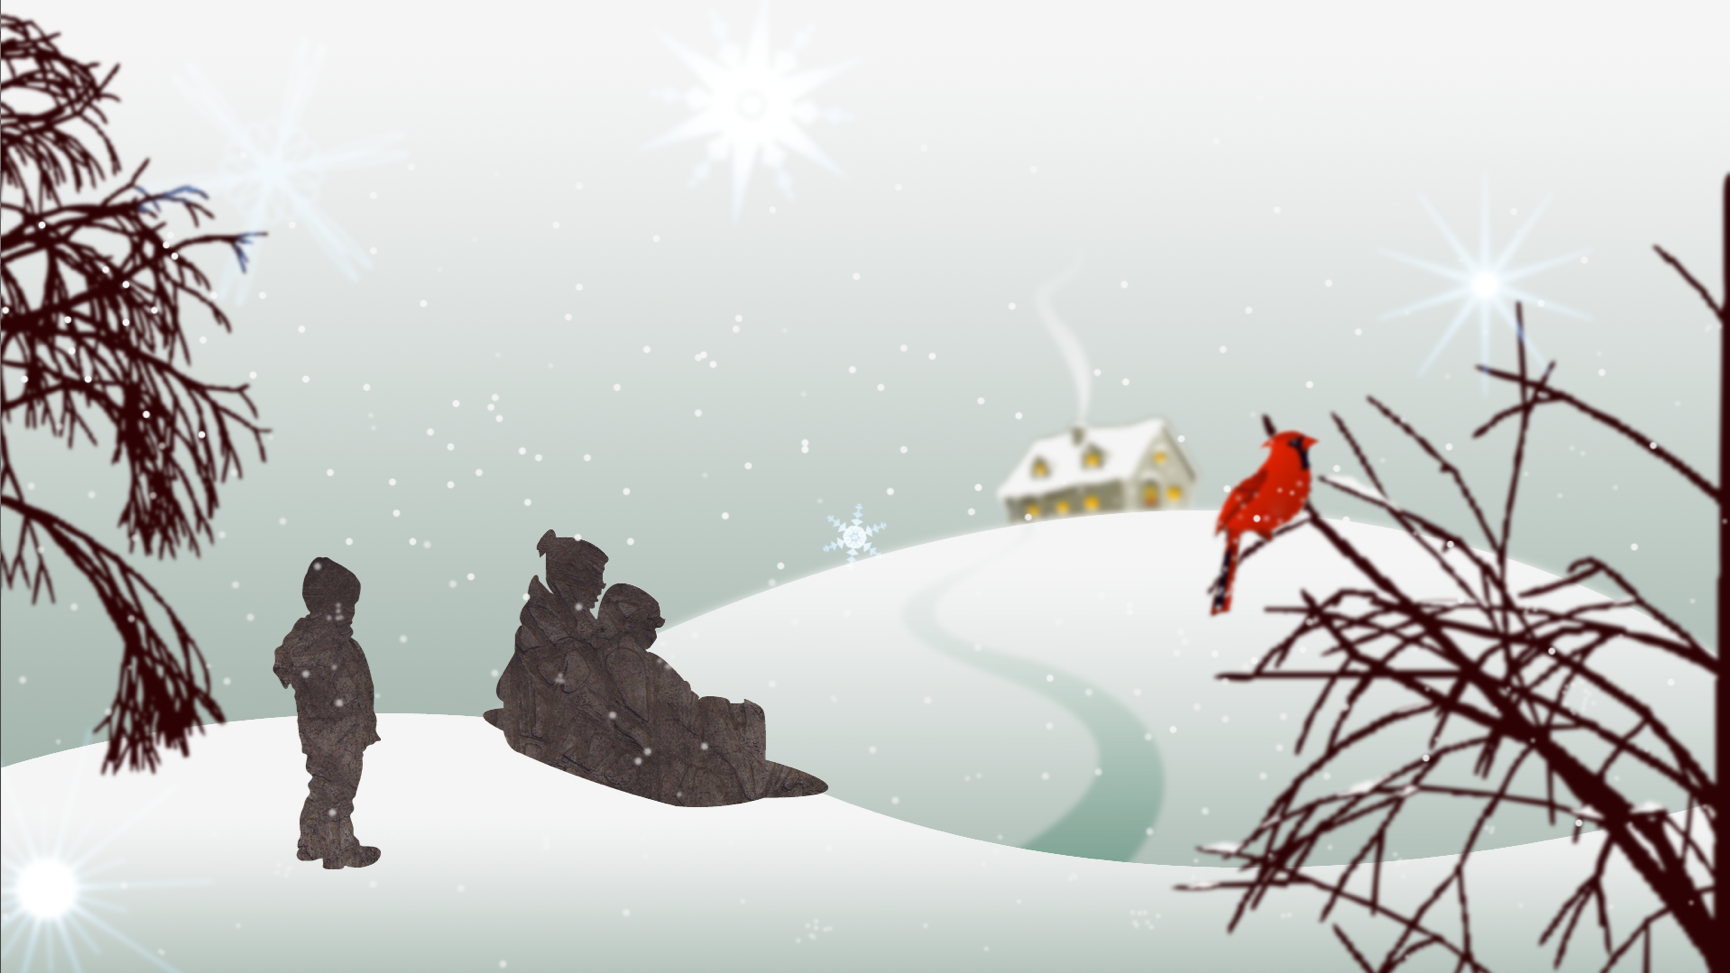 Holiday Greeting Card - Illustration 2